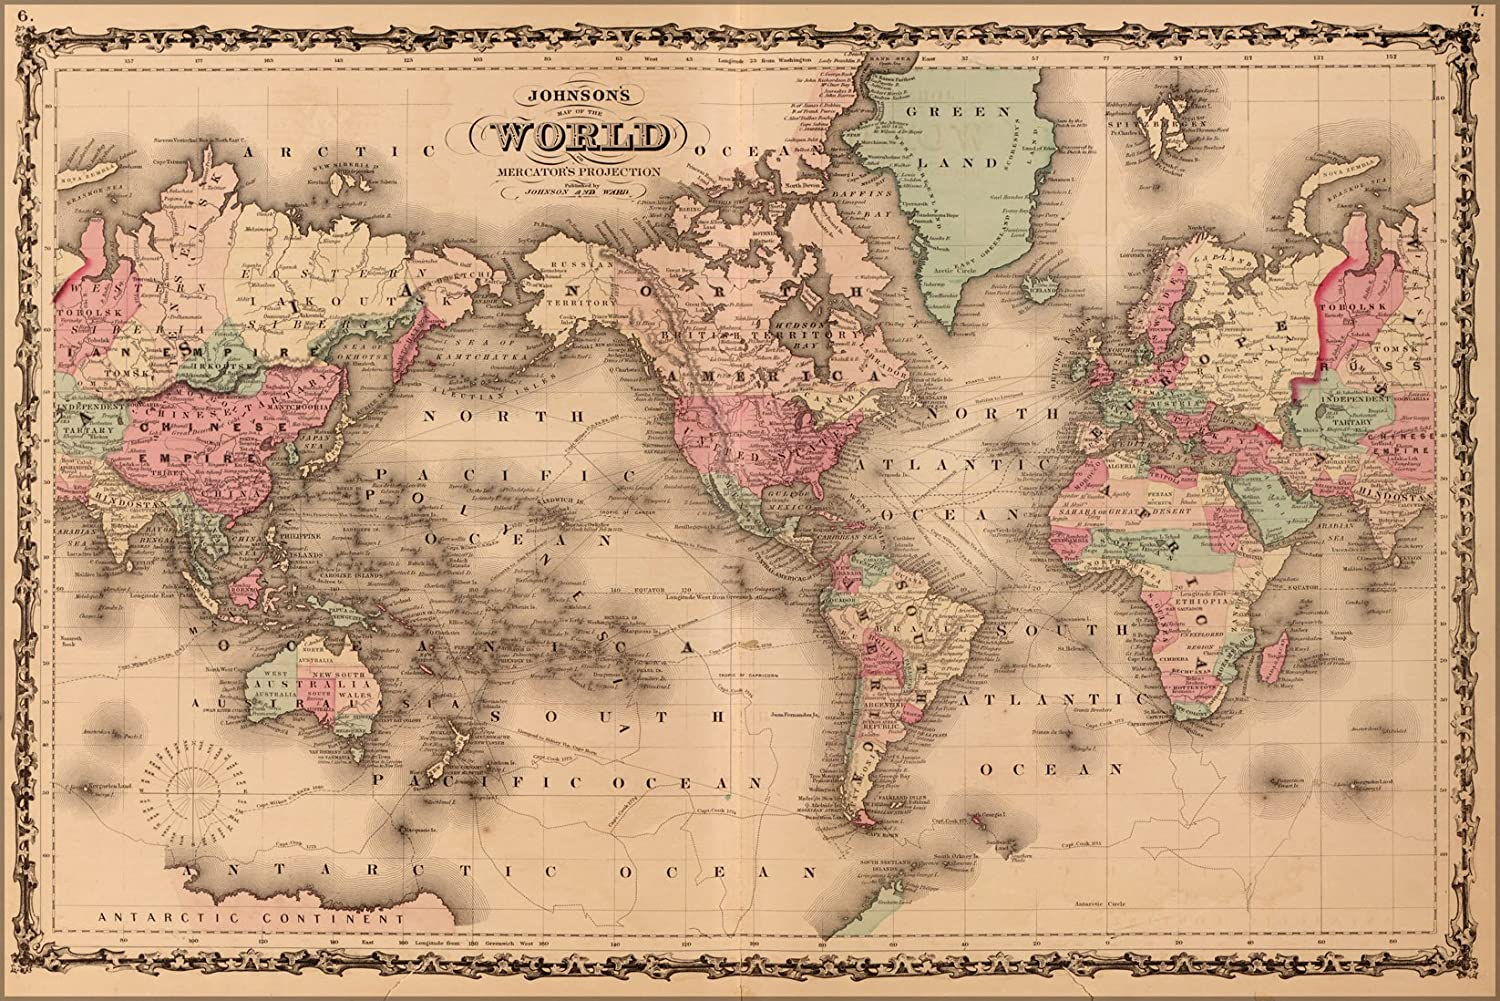 Amazon 24x36 poster johnsons world map 1862 p2 antique amazon 24x36 poster johnsons world map 1862 p2 antique reprint world map wall poster sports outdoors gumiabroncs Image collections